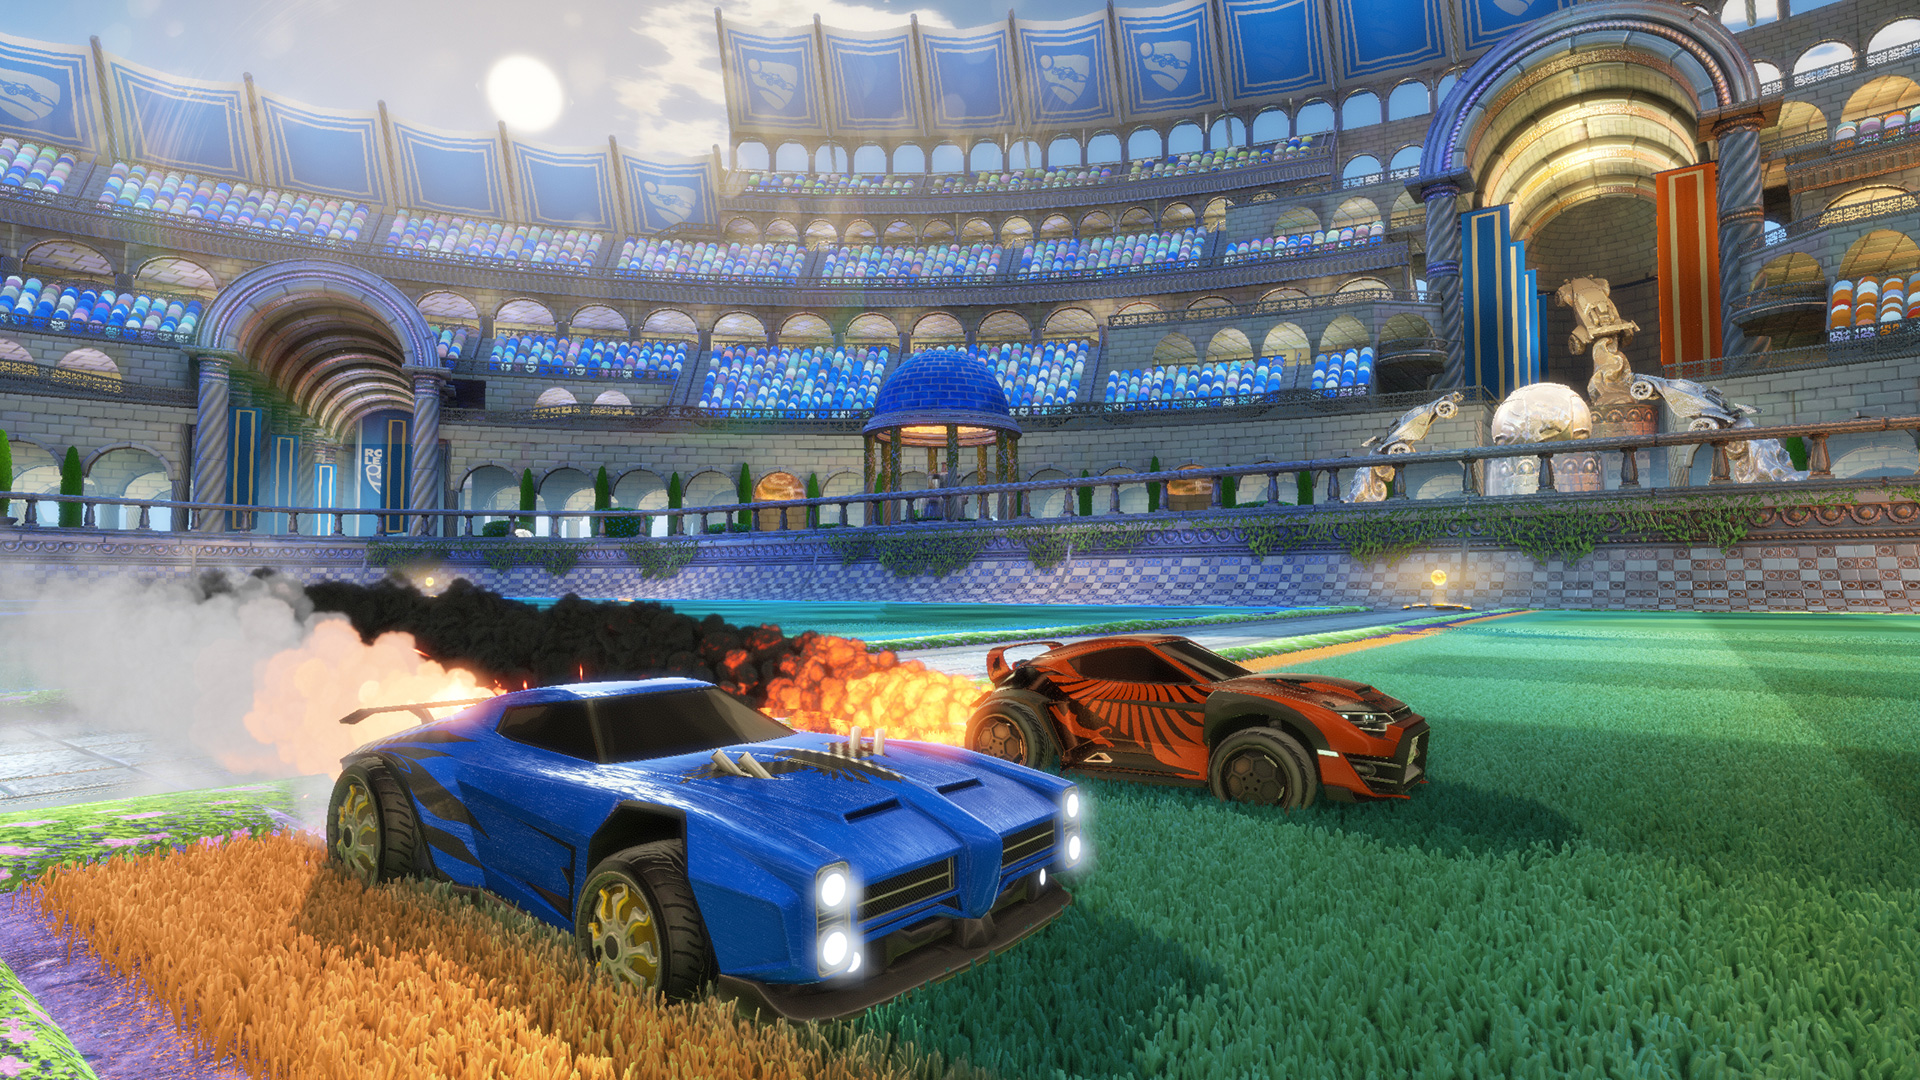 Rocket League gets spectator mode and map, plus first paid DLC, in 'early August' (update)